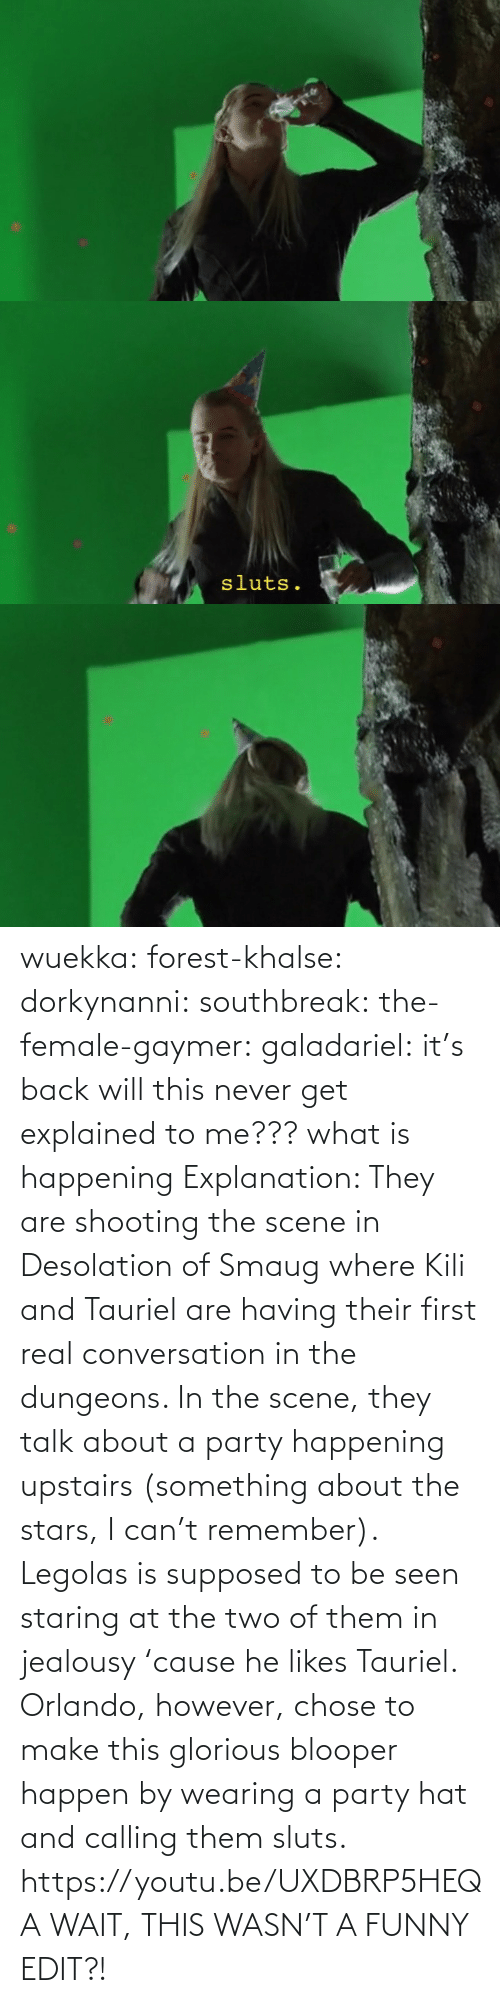 name: wuekka: forest-khalse:   dorkynanni:  southbreak:   the-female-gaymer:   galadariel:  it's back   will this never get explained to me???    what is happening    Explanation:  They are shooting the scene in Desolation of Smaug where Kili and Tauriel are having their first real conversation in the dungeons.  In the scene, they talk about a party happening upstairs (something about the stars, I can't remember). Legolas is supposed to be seen staring at the two of them in jealousy 'cause he likes Tauriel.  Orlando, however, chose to make this glorious blooper happen by wearing a party hat and calling them sluts.    https://youtu.be/UXDBRP5HEQA    WAIT, THIS WASN'T A FUNNY EDIT?!